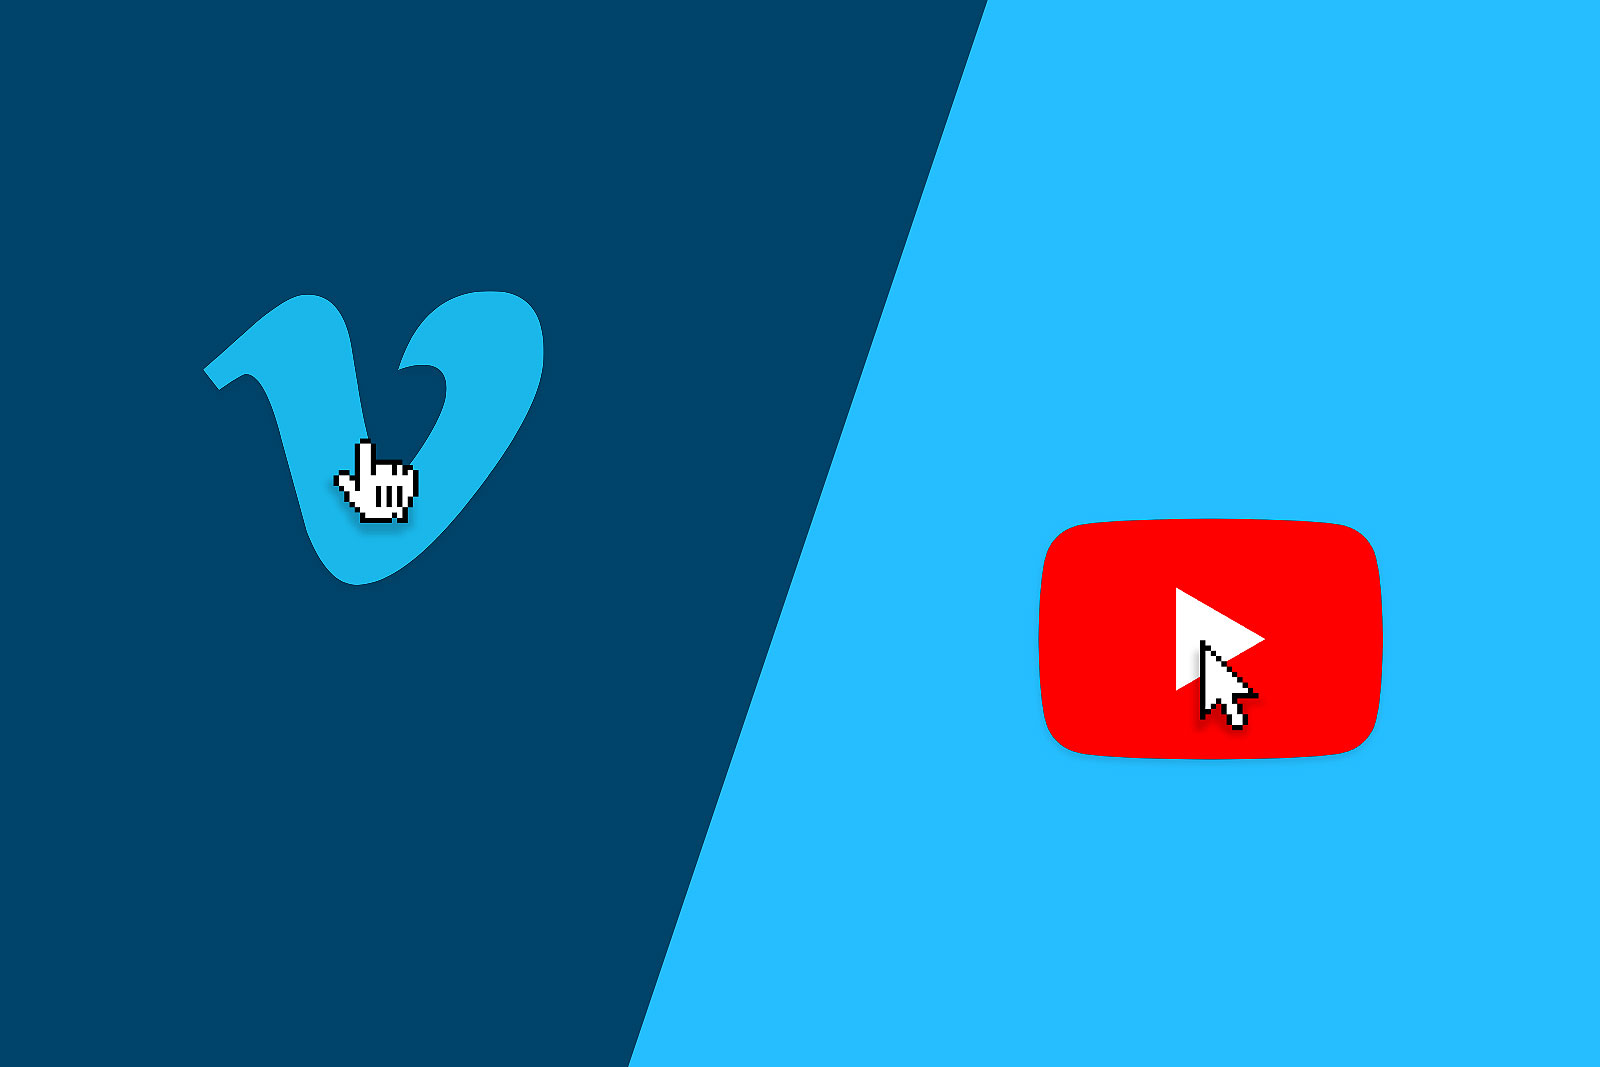 Vimeo vs. YouTube: Which Should You Use?